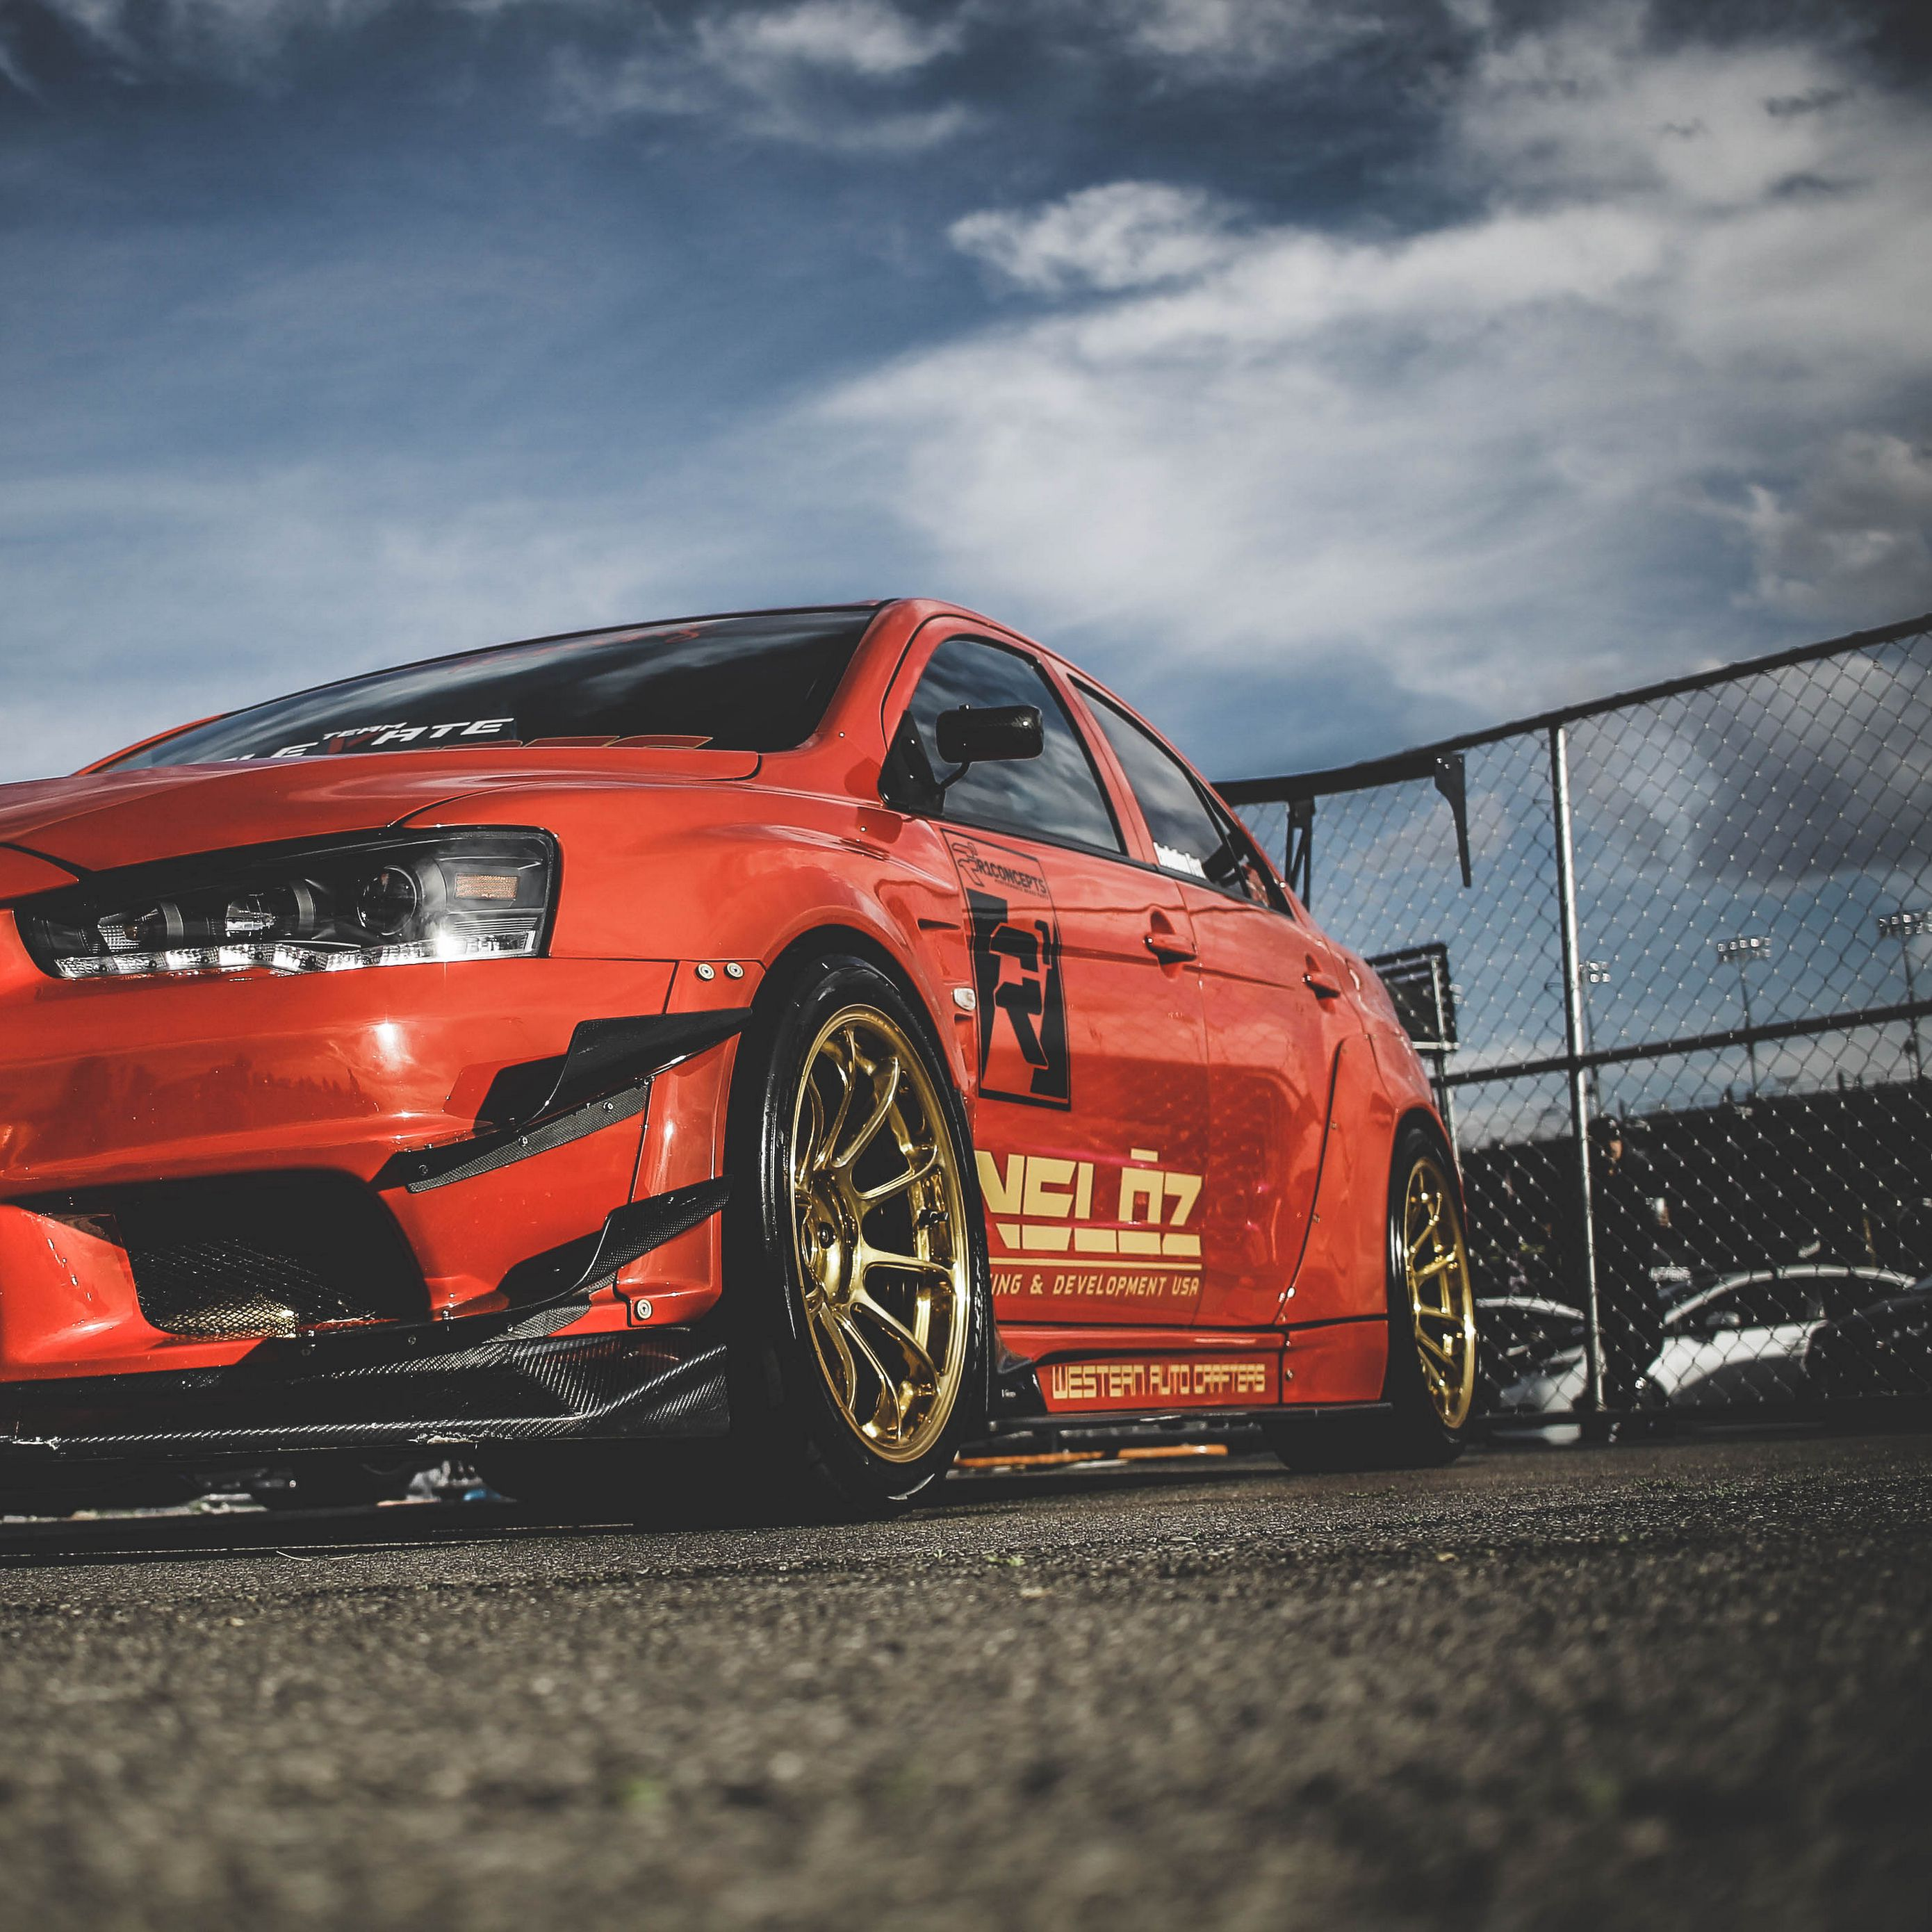 Mitsubishi Background: Download Wallpaper 2780x2780 Mitsubishi Lancer Evolution X